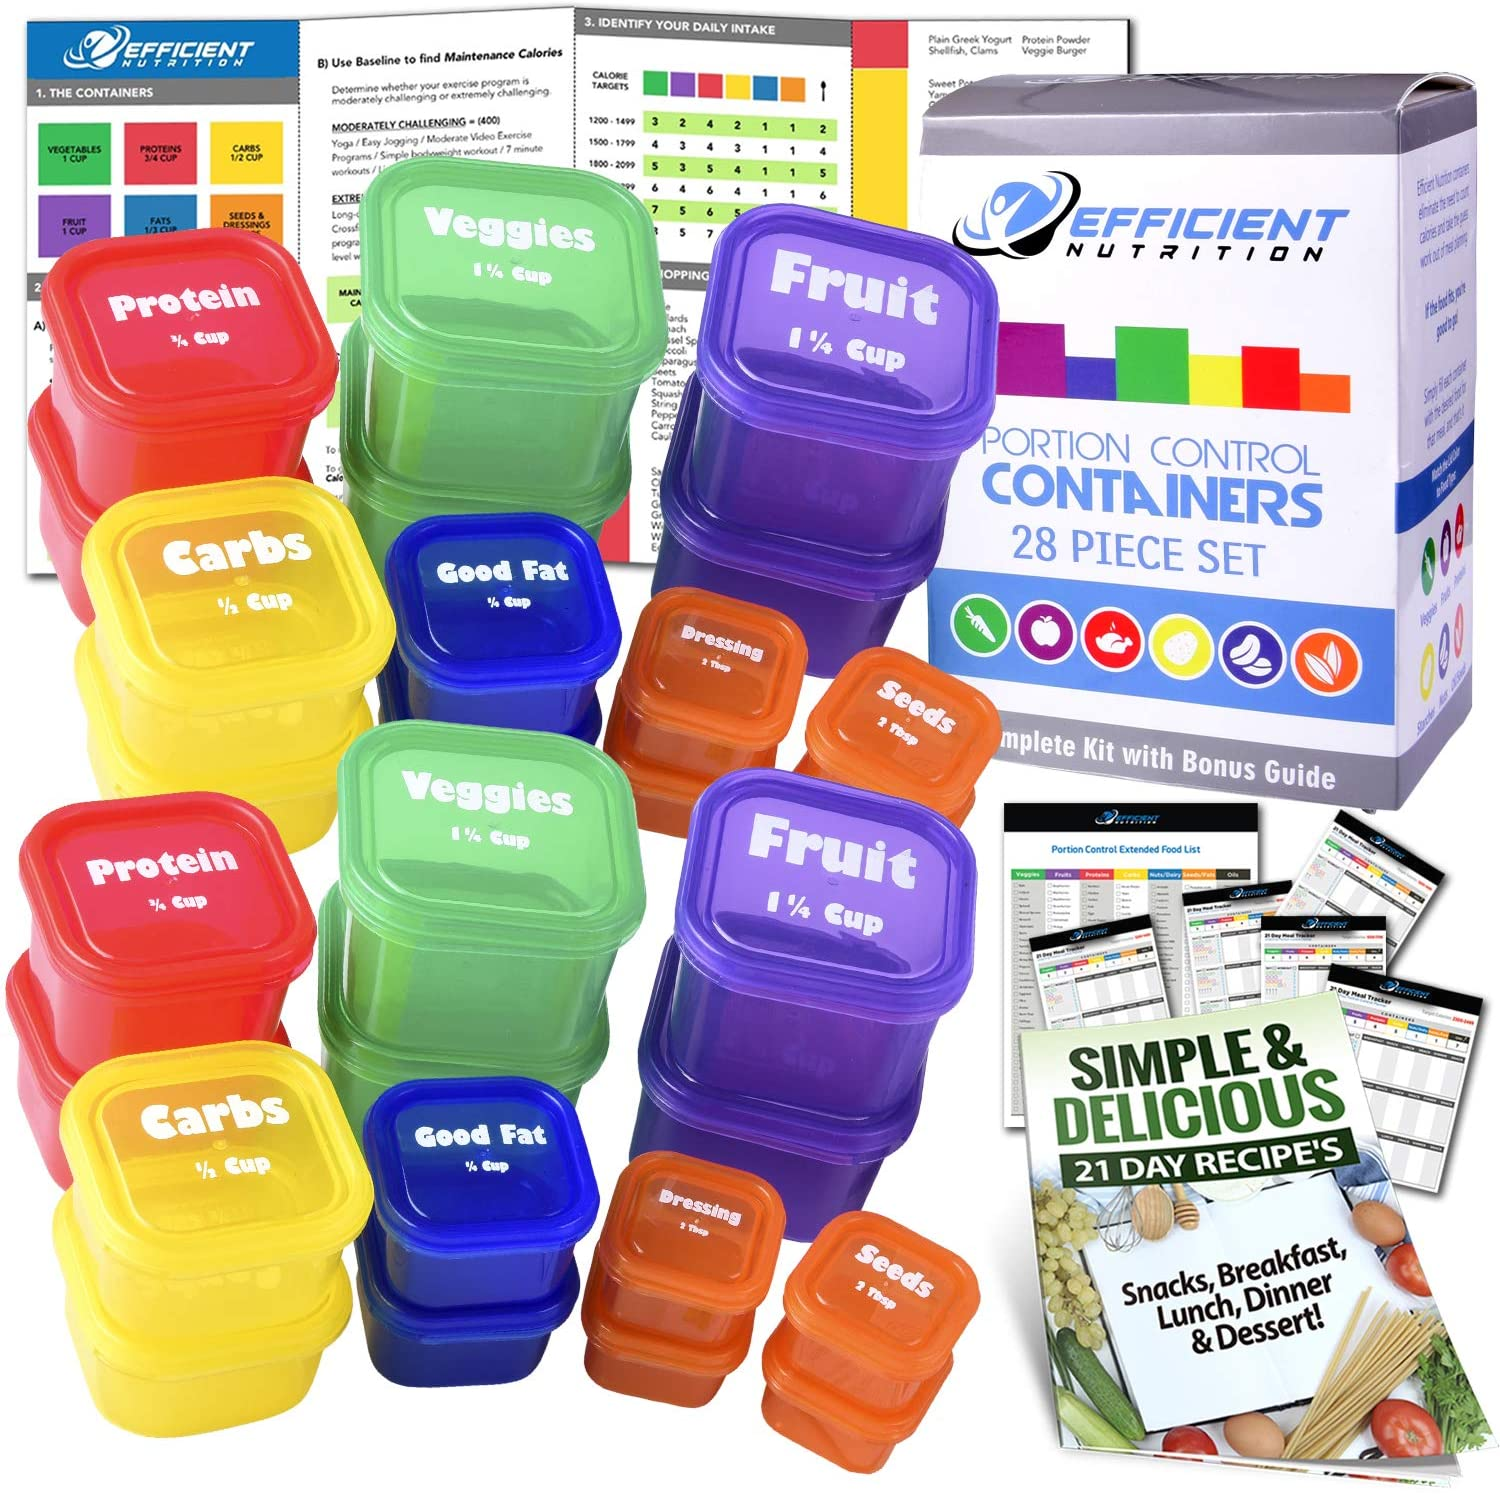 21 Day LABELED Efficient Nutrition Portion Control Containers Kit (28-Piece) + COMPLETE GUIDE + 21 DAY PLANNER + RECIPE eBOOK, BPA FREE Color Coded Meal Prep System for Diet and Weight Loss